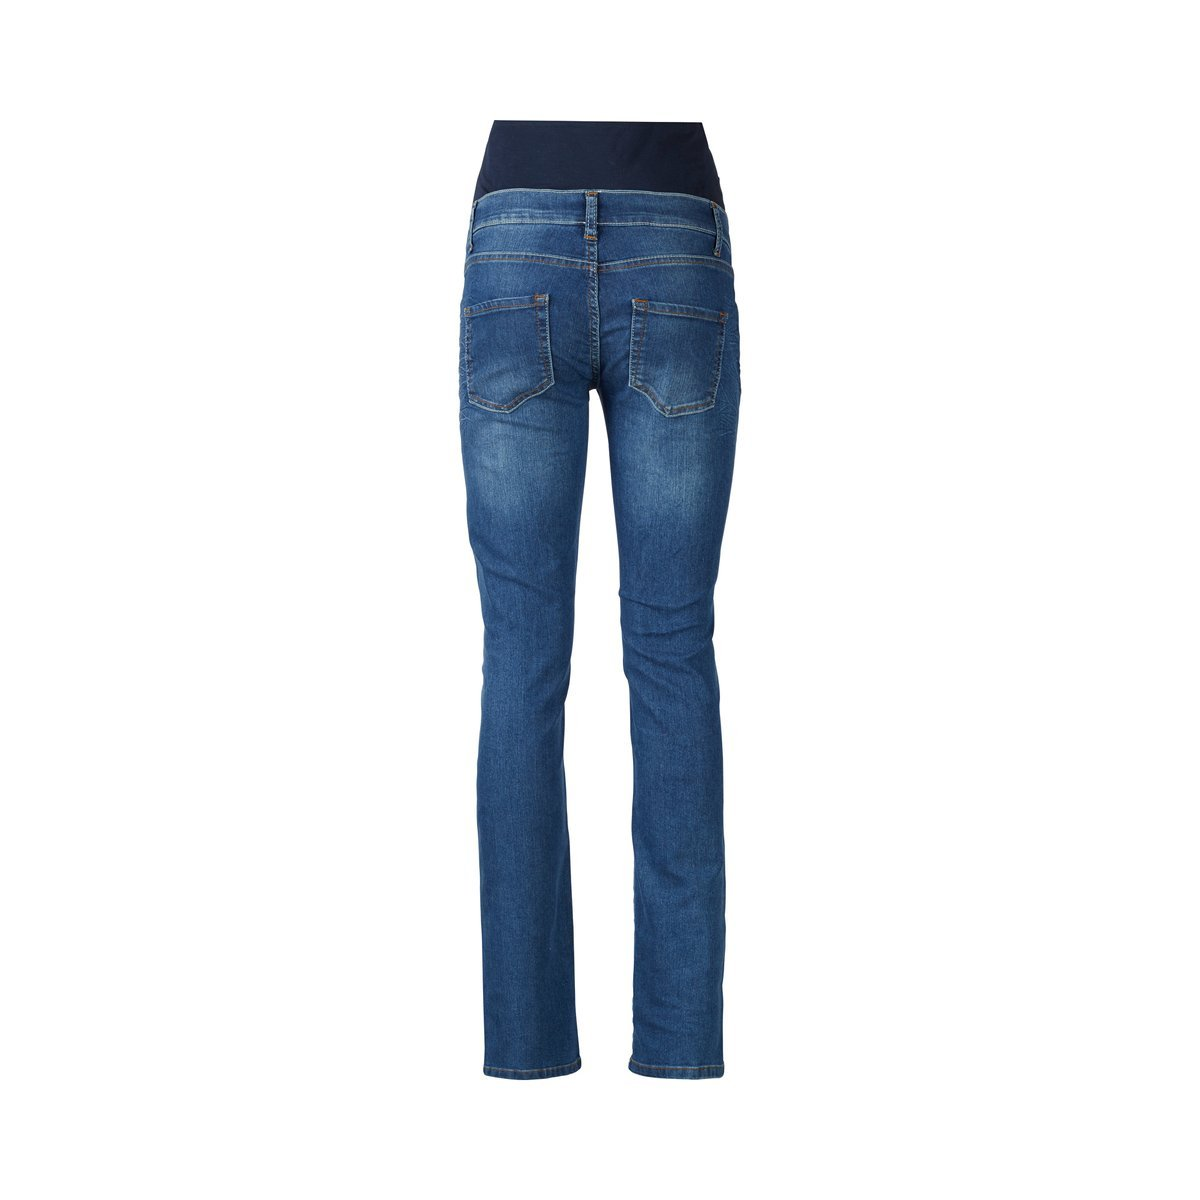 2HEARTS Umstands-Jeans We Love Basics//Umstandsmode Damen//Schwangerschaftshose//Blue Washed